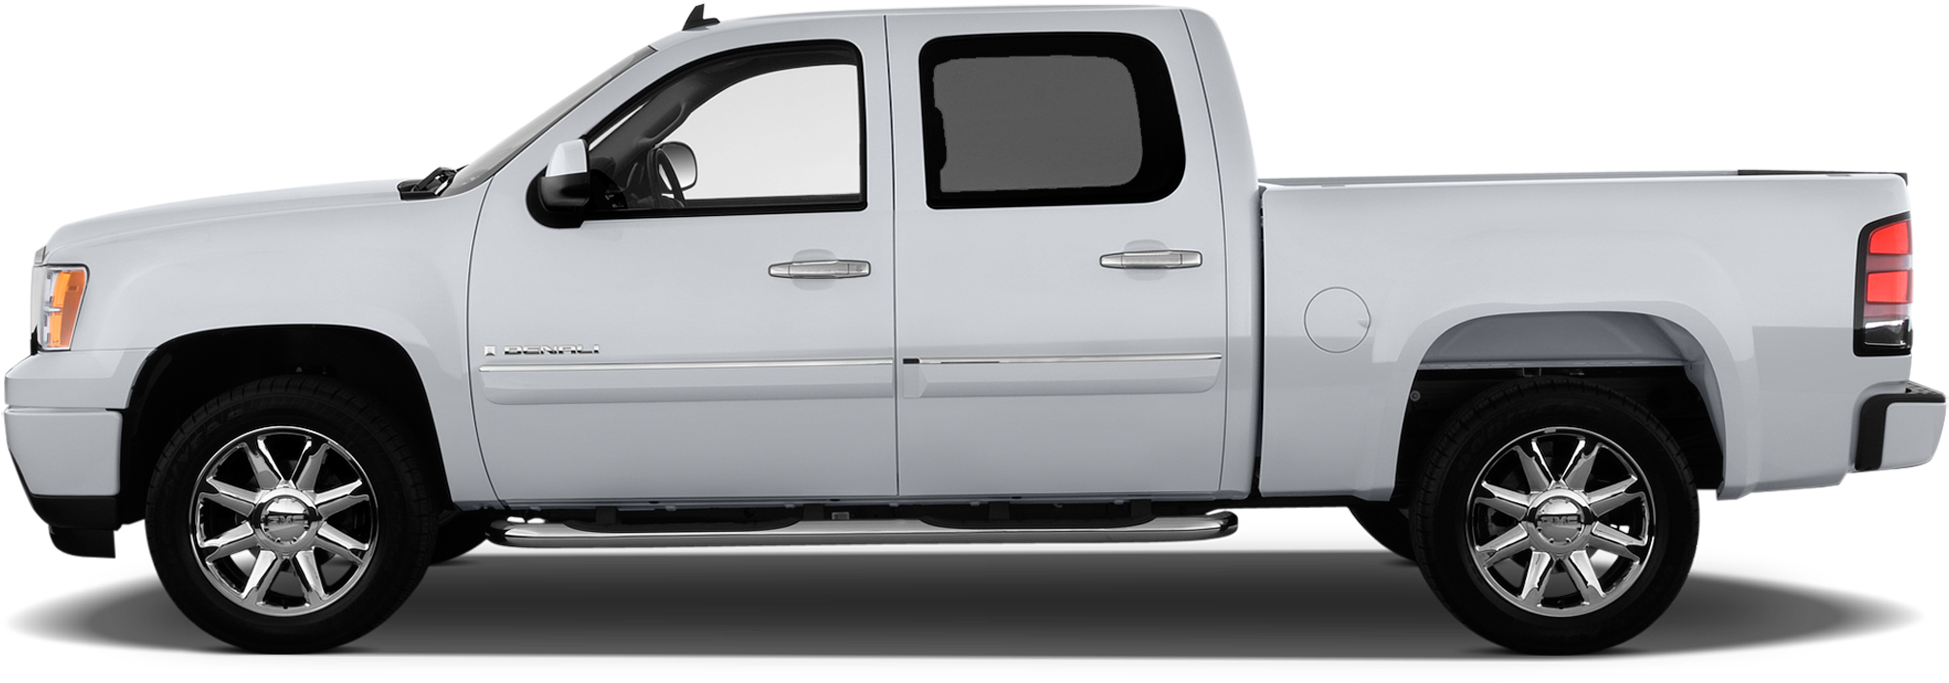 Side Pickup Truck Png Photo 2017 Dodge Ram.